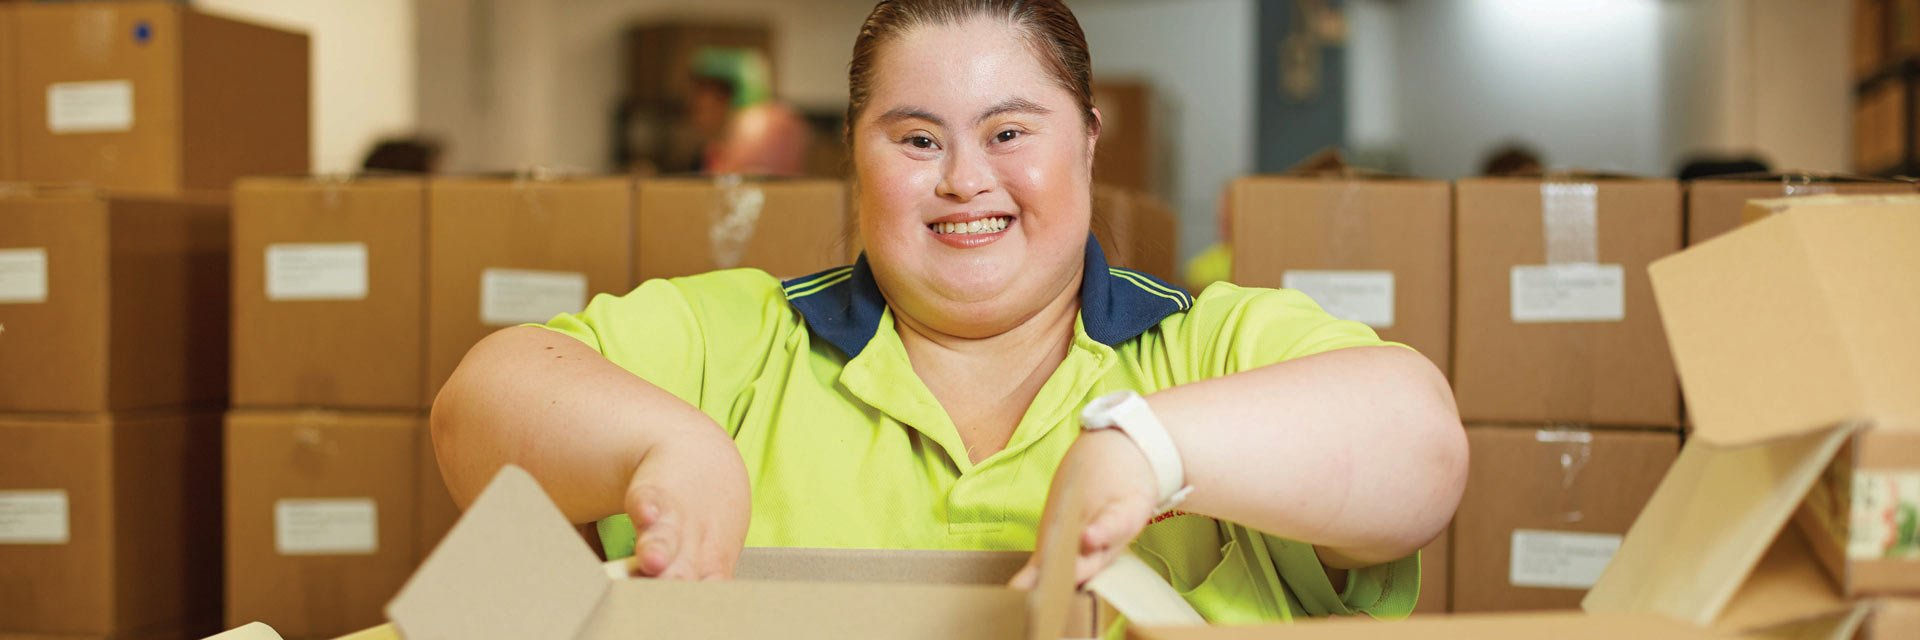 Lady with a disability working in the packaging business